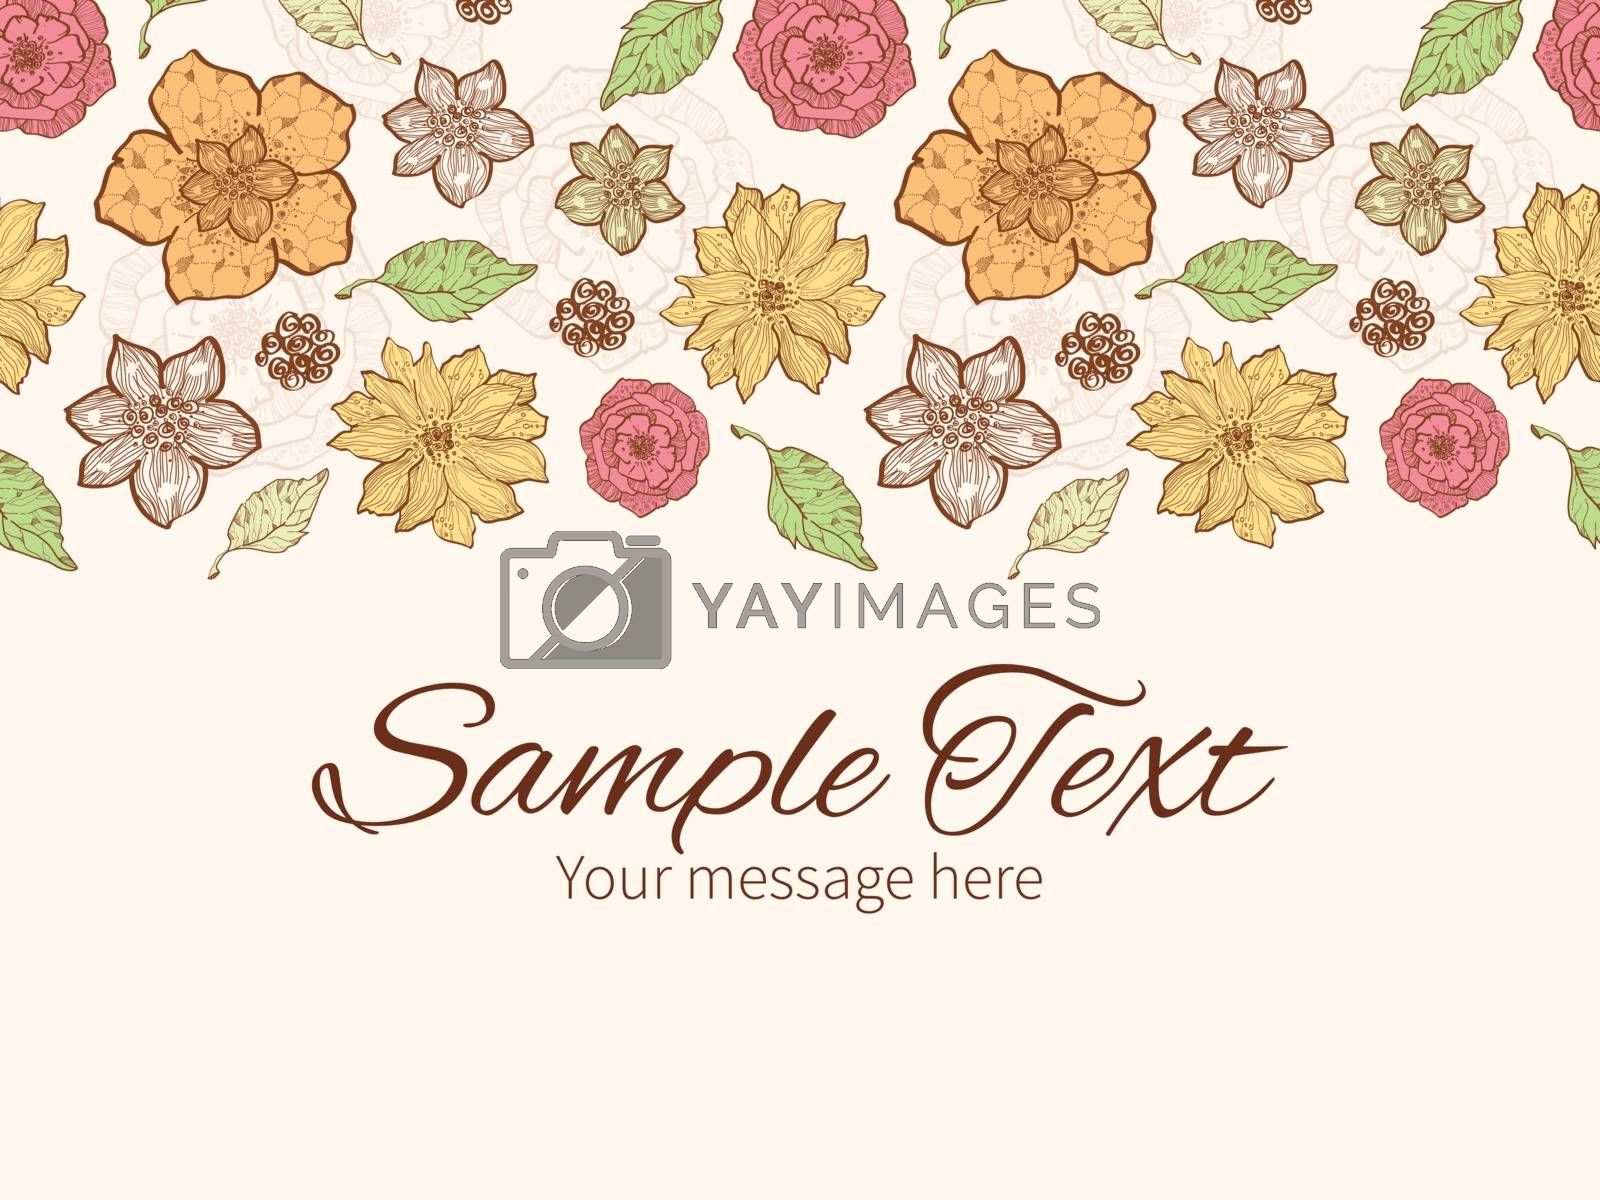 Vector warm fall lineart flowers horizontal border greeting card invitation template graphic design